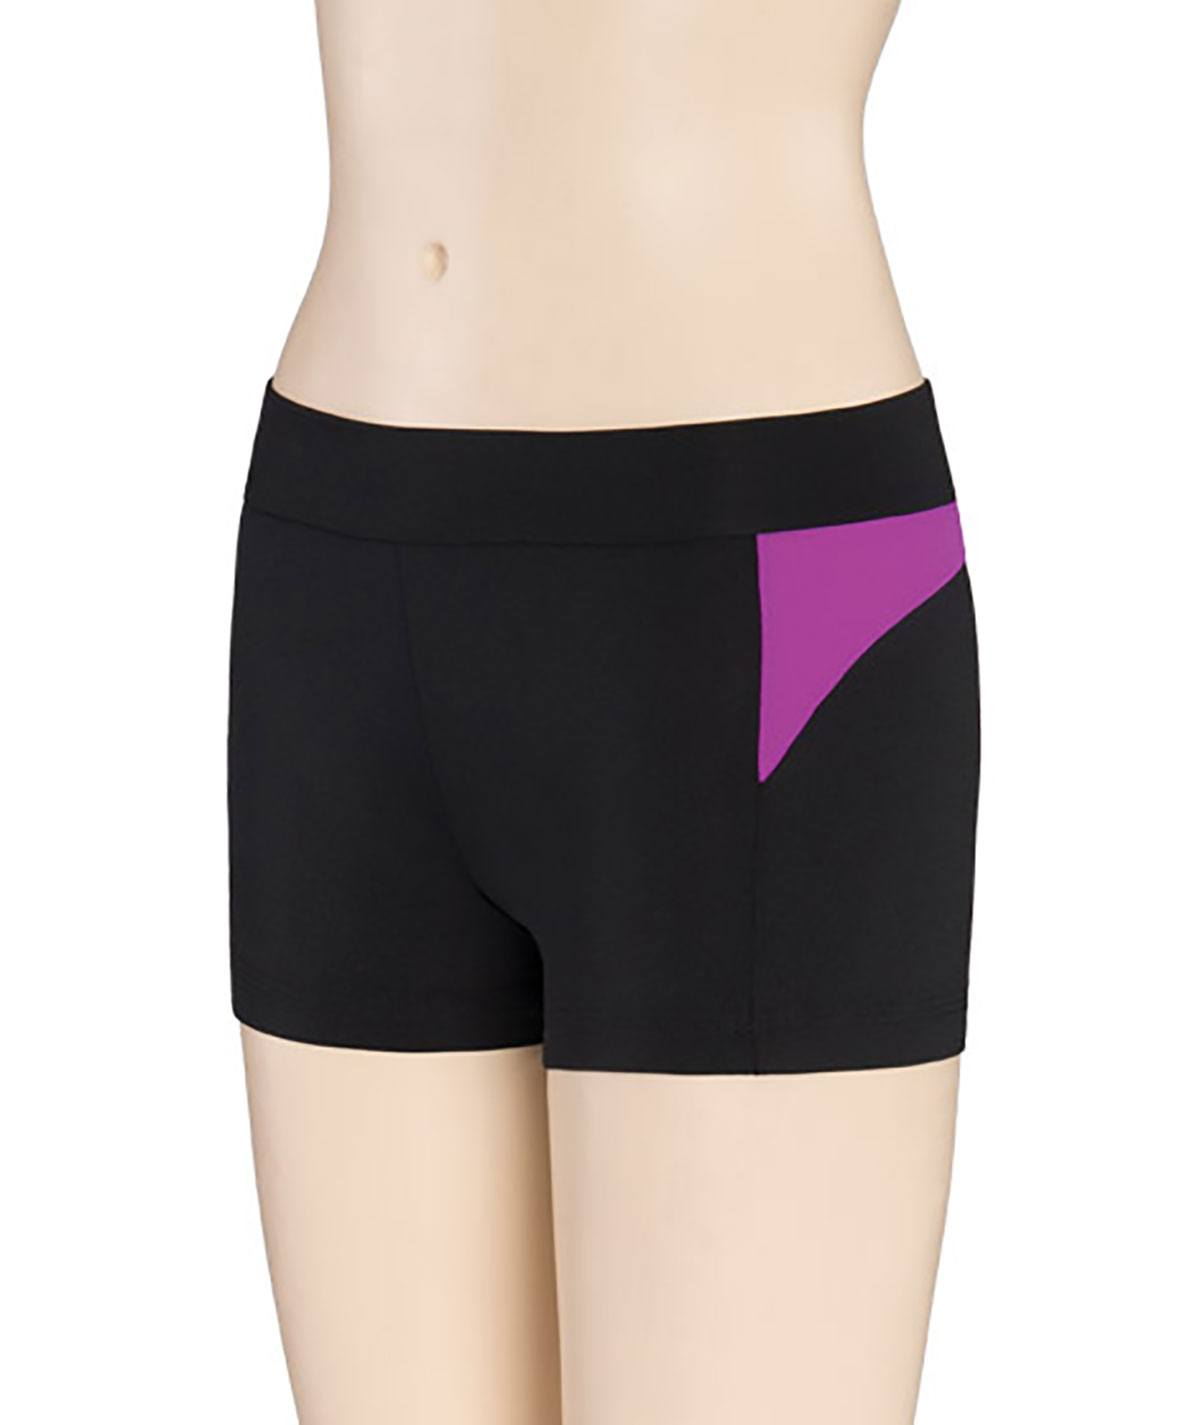 GK All Star Horizontal Arc Cheer Shorts